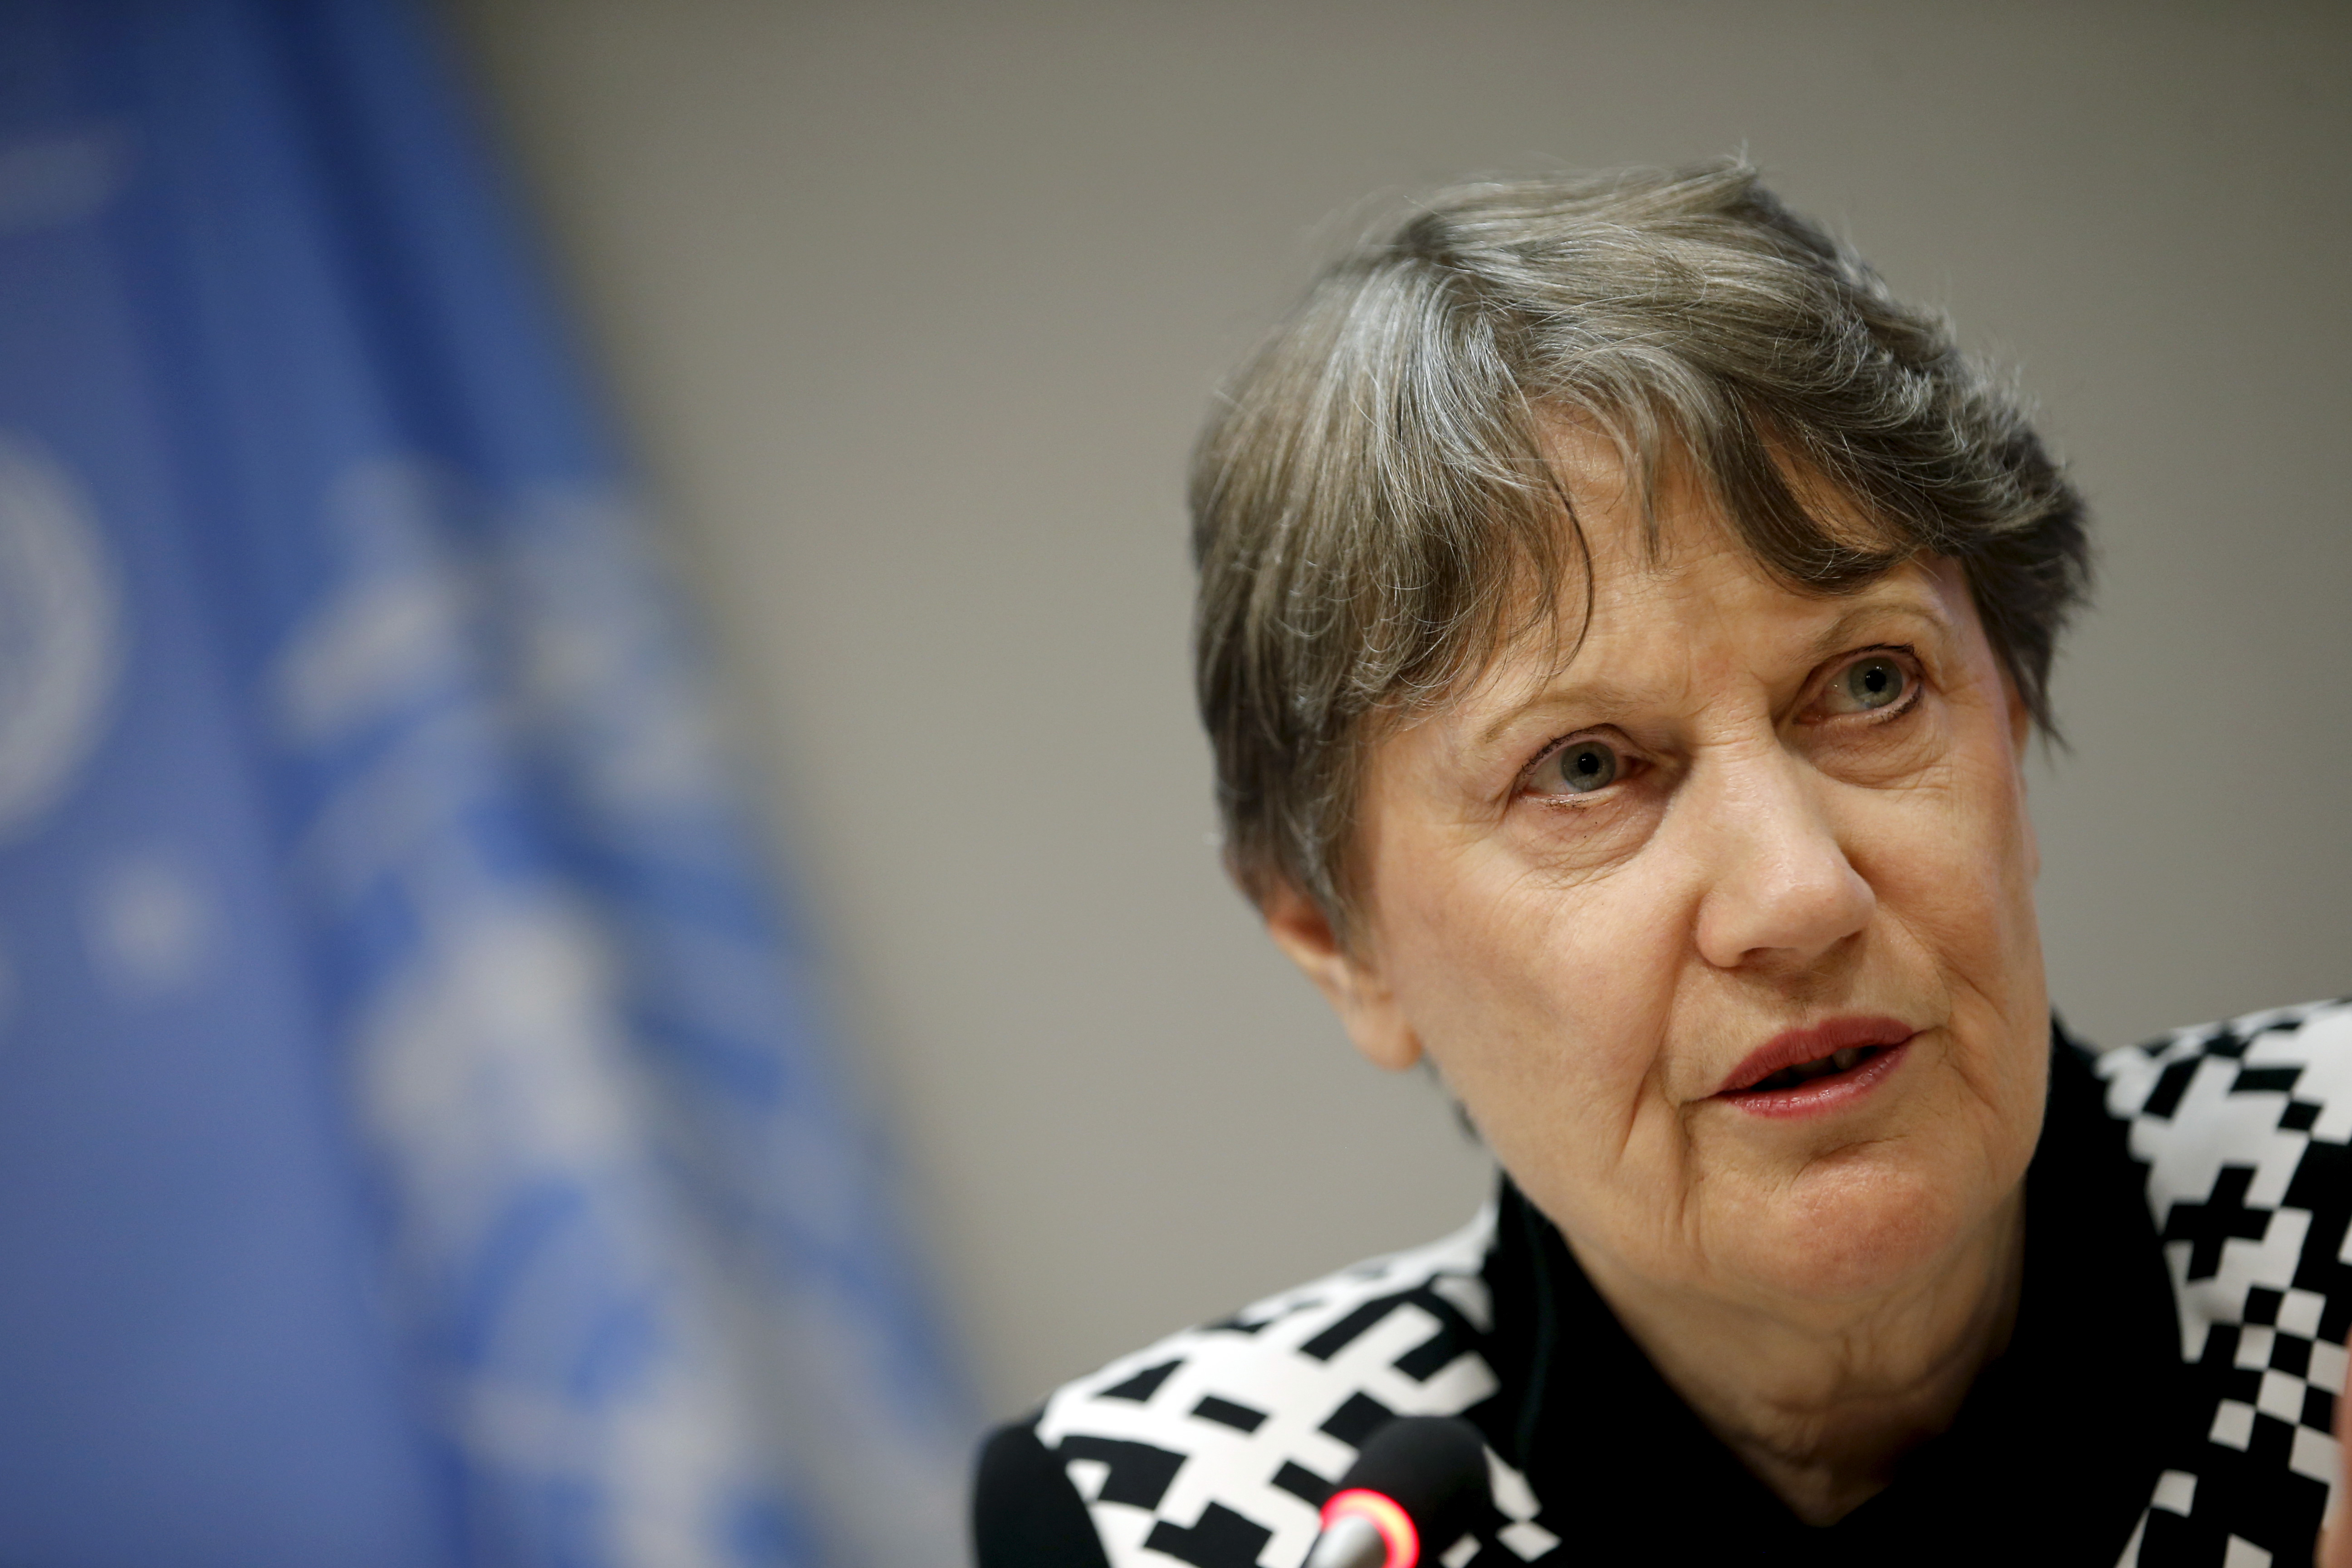 U.N. Development Programme Administrator Helen Clark speaks at a news conference at the U.N.'s headquarters in New York City on Sept. 21, 2015